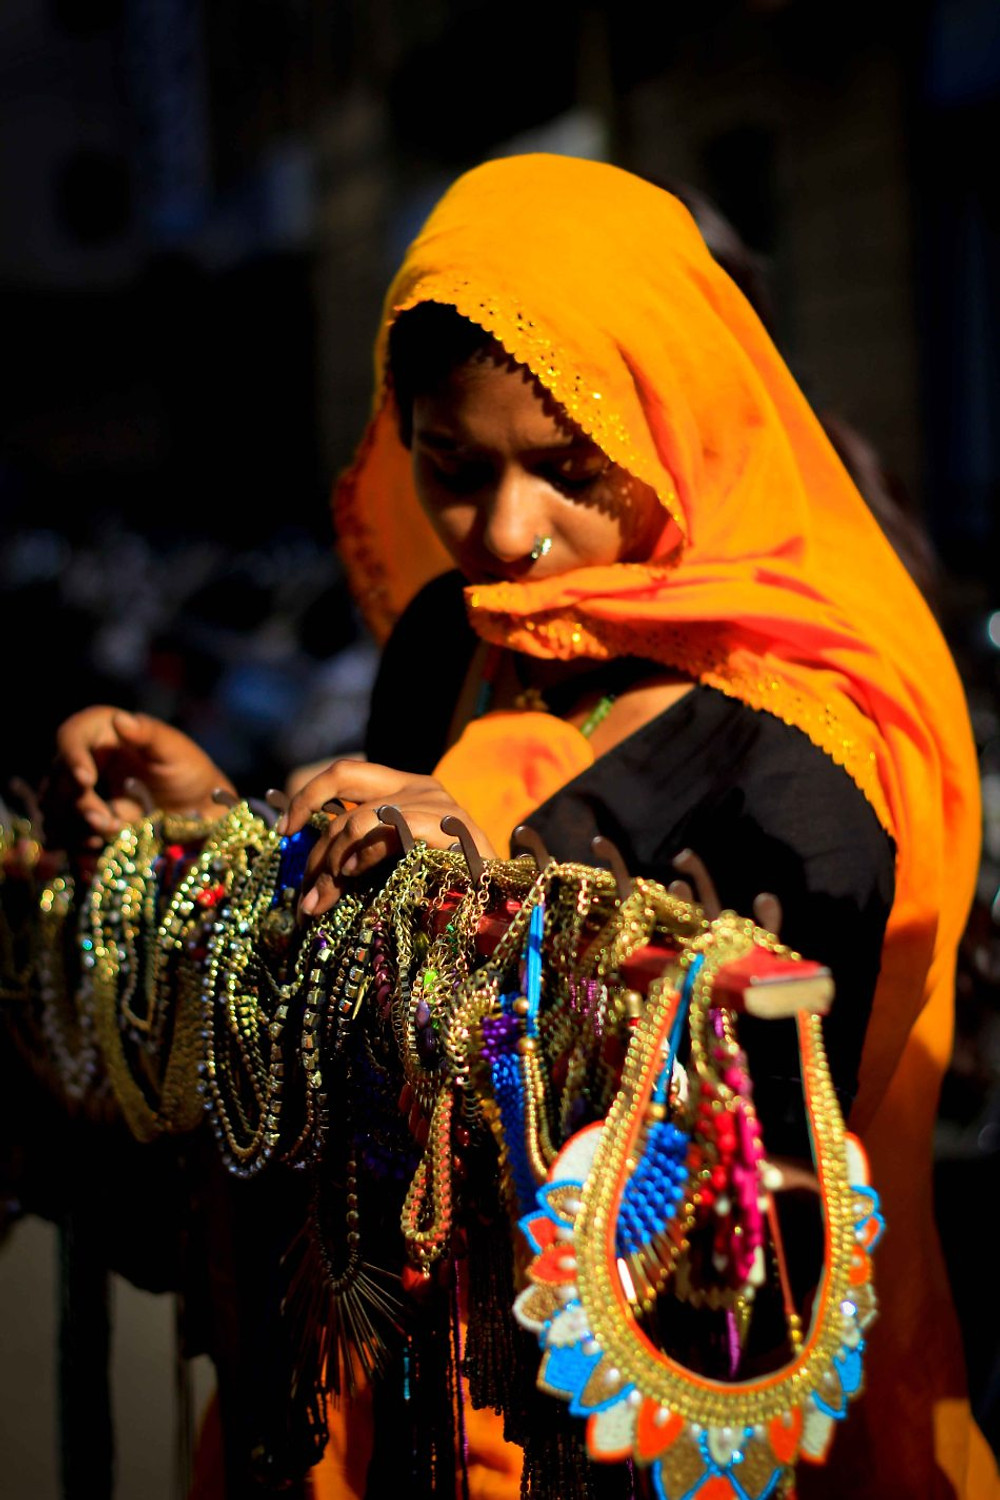 gypsy-womens-day-rohit-pansare-photography